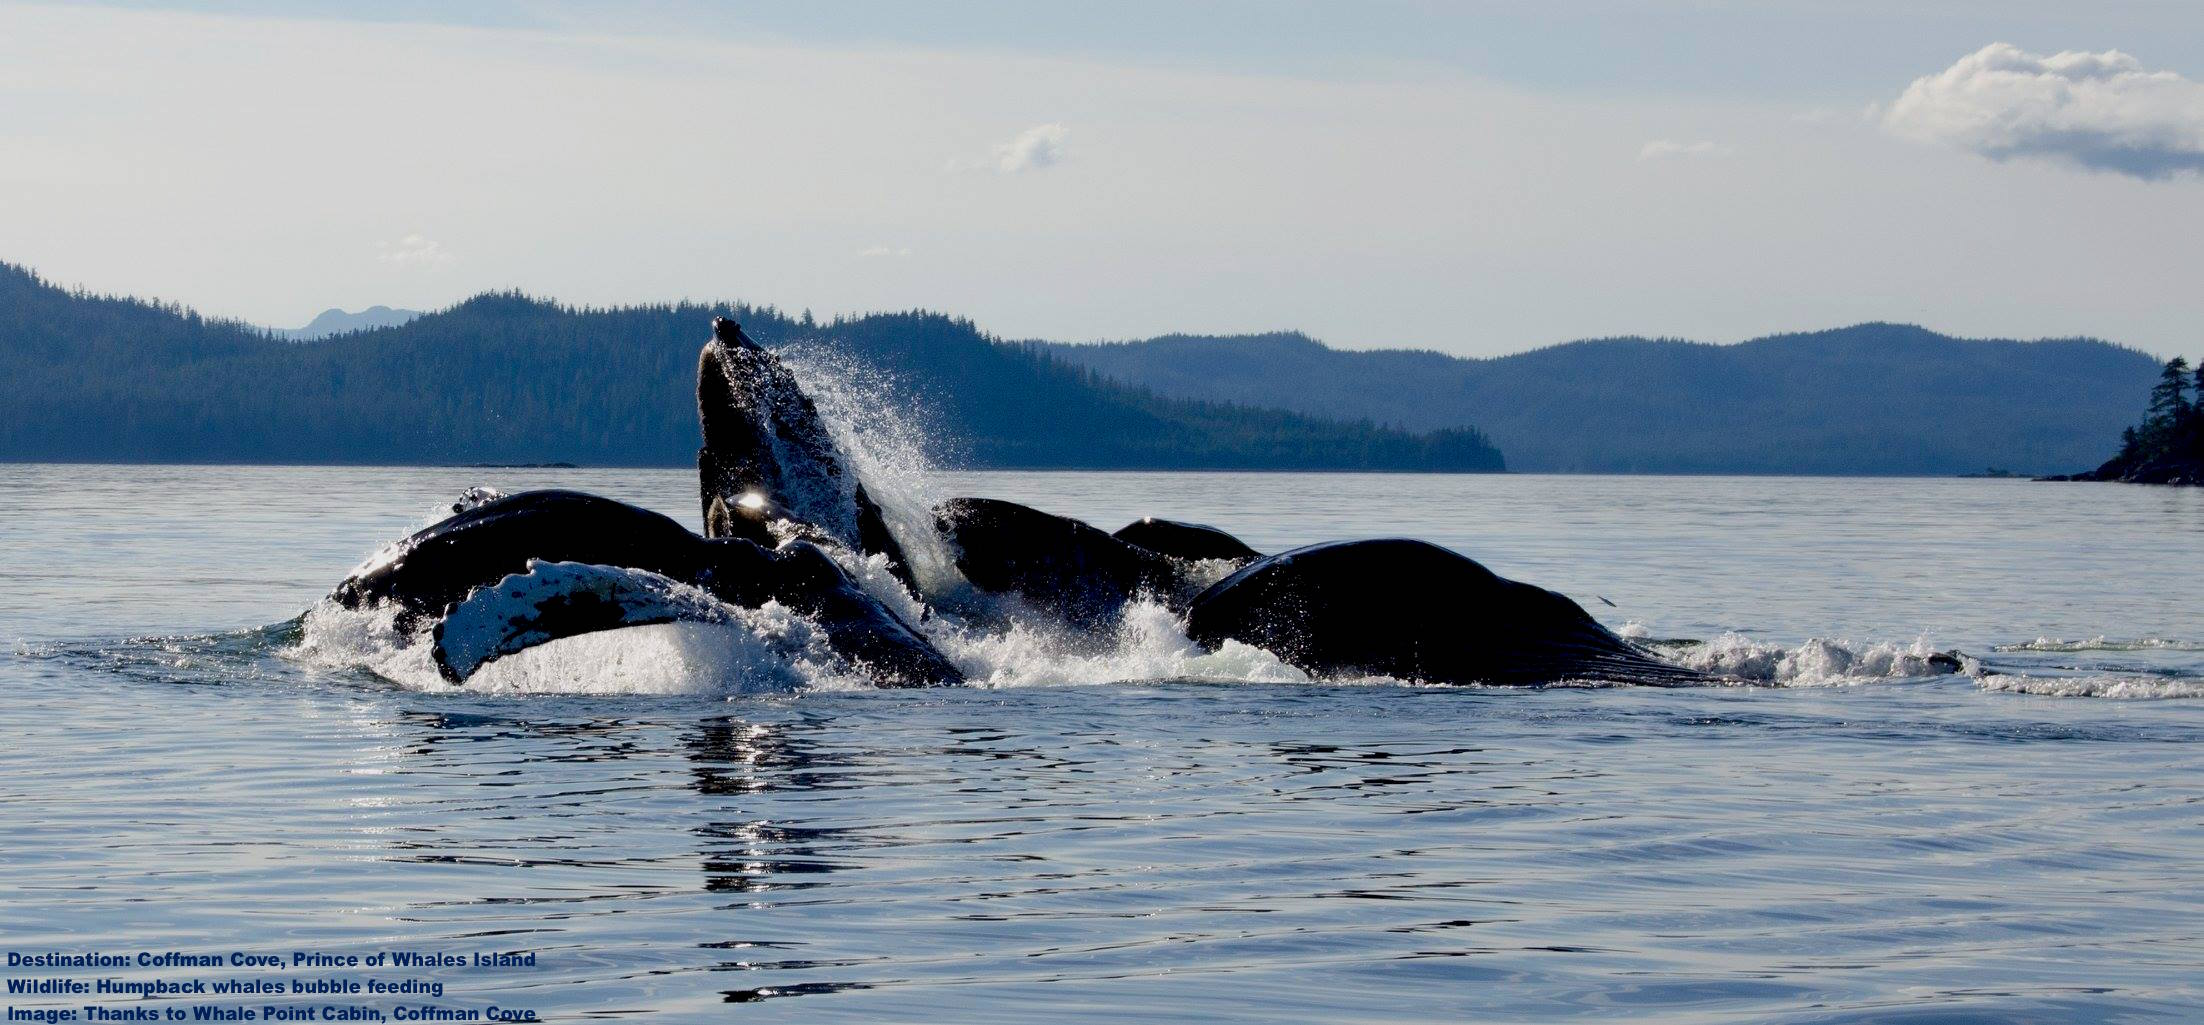 """THE HUMPBACK WHALES COMES SO CLOSE TO THE SHORE TO FEED THAT YOU CAN WATCH THEM FROM LAND ON PRINCE OF WHALES ISLAND. THIS IMAGE OF HUMPBACKS """"BUBBLE FEEDING"""" WAS TAKEN AT WHALE POINT CABIN, COFFMAN COVE. IMAGE: COURTESY OF WHALE POINT CABIN."""